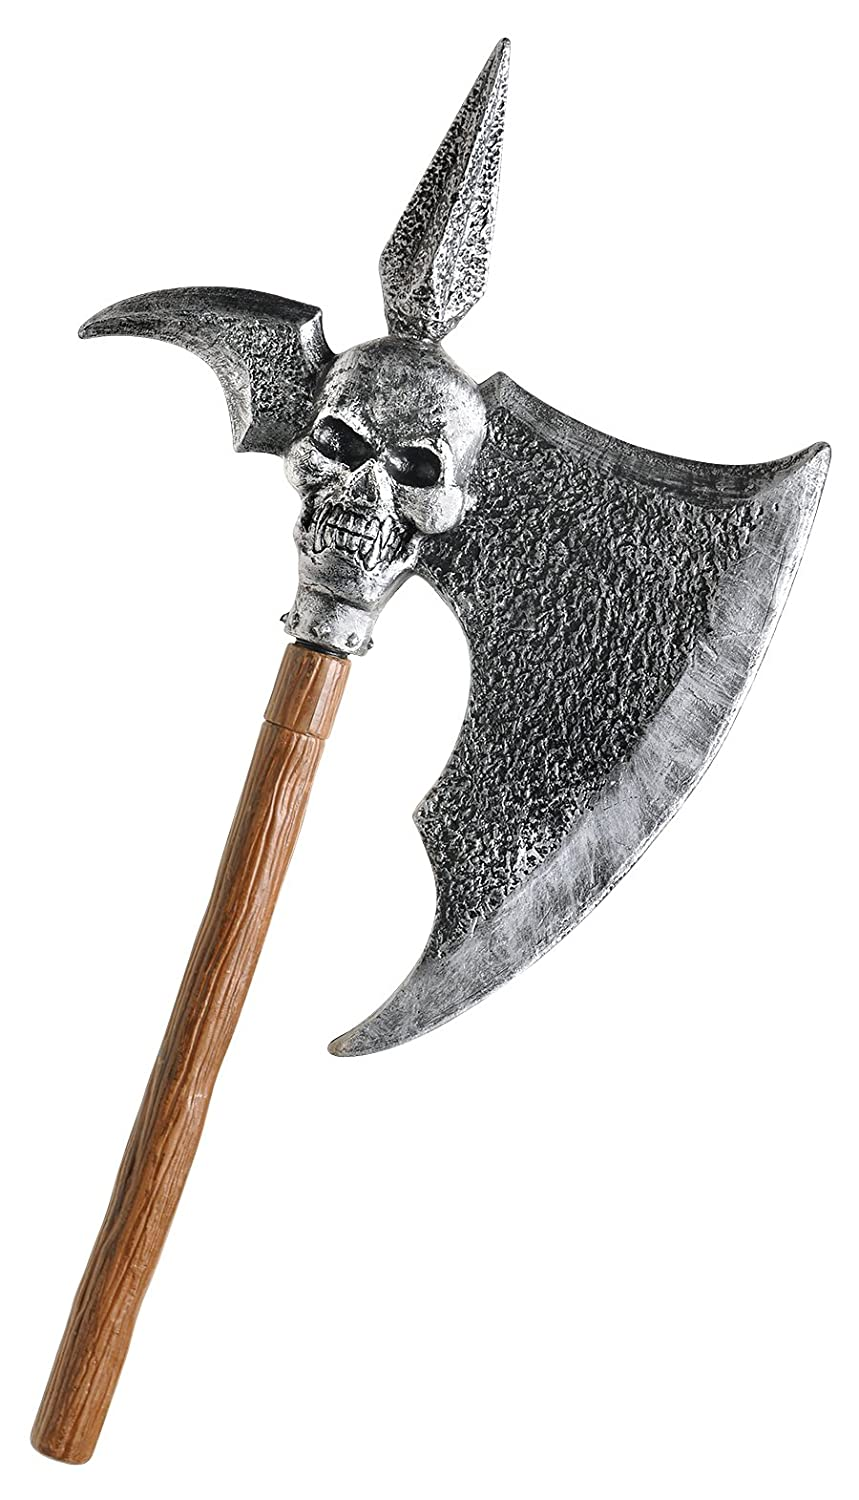 Amscan International 76 cm Adults Spiked Skull Axe 840067-55